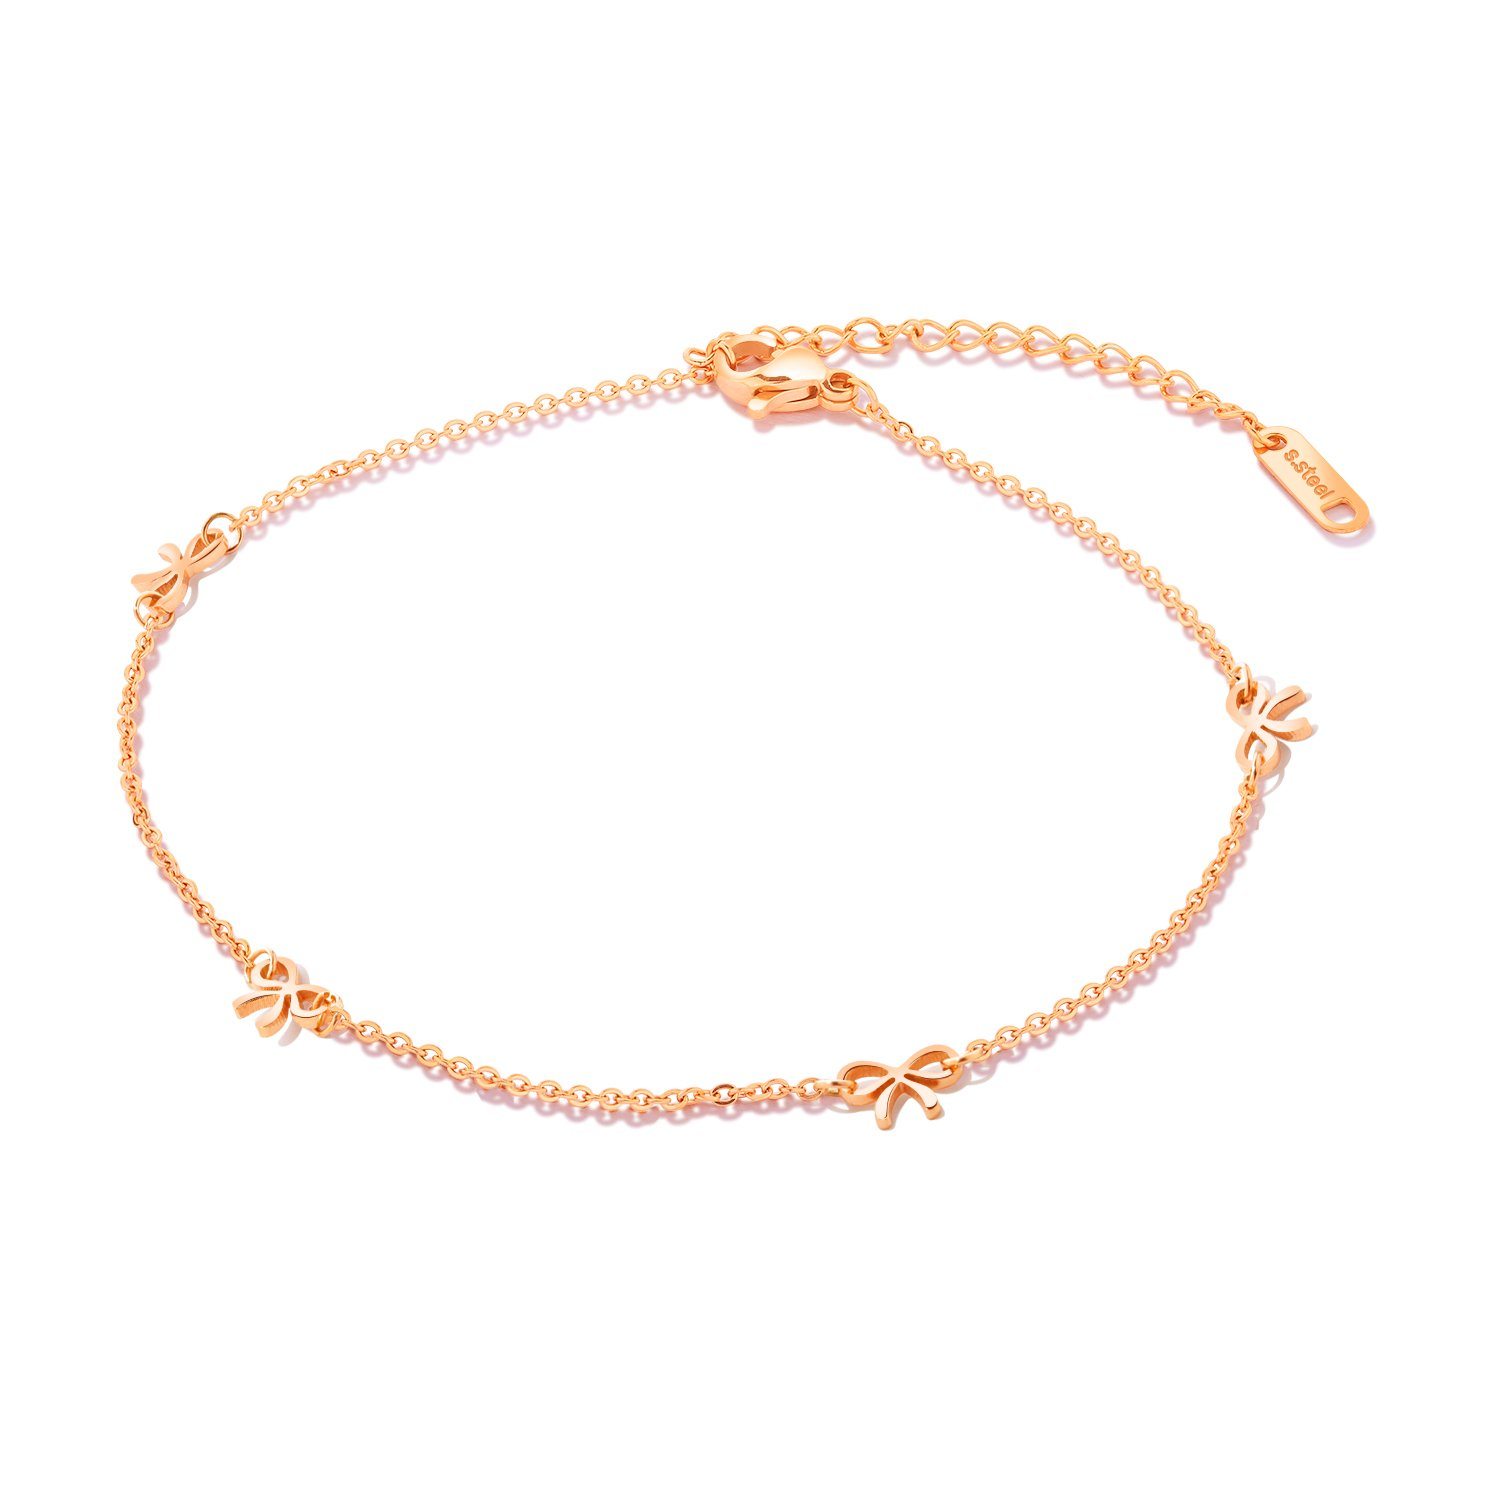 Fate Love Jewelry Women Girls Lovely Rose Gold Bow-knot Foot Chain Anklets Bracelets, Beach Sandals Barefoot Adjustable Link